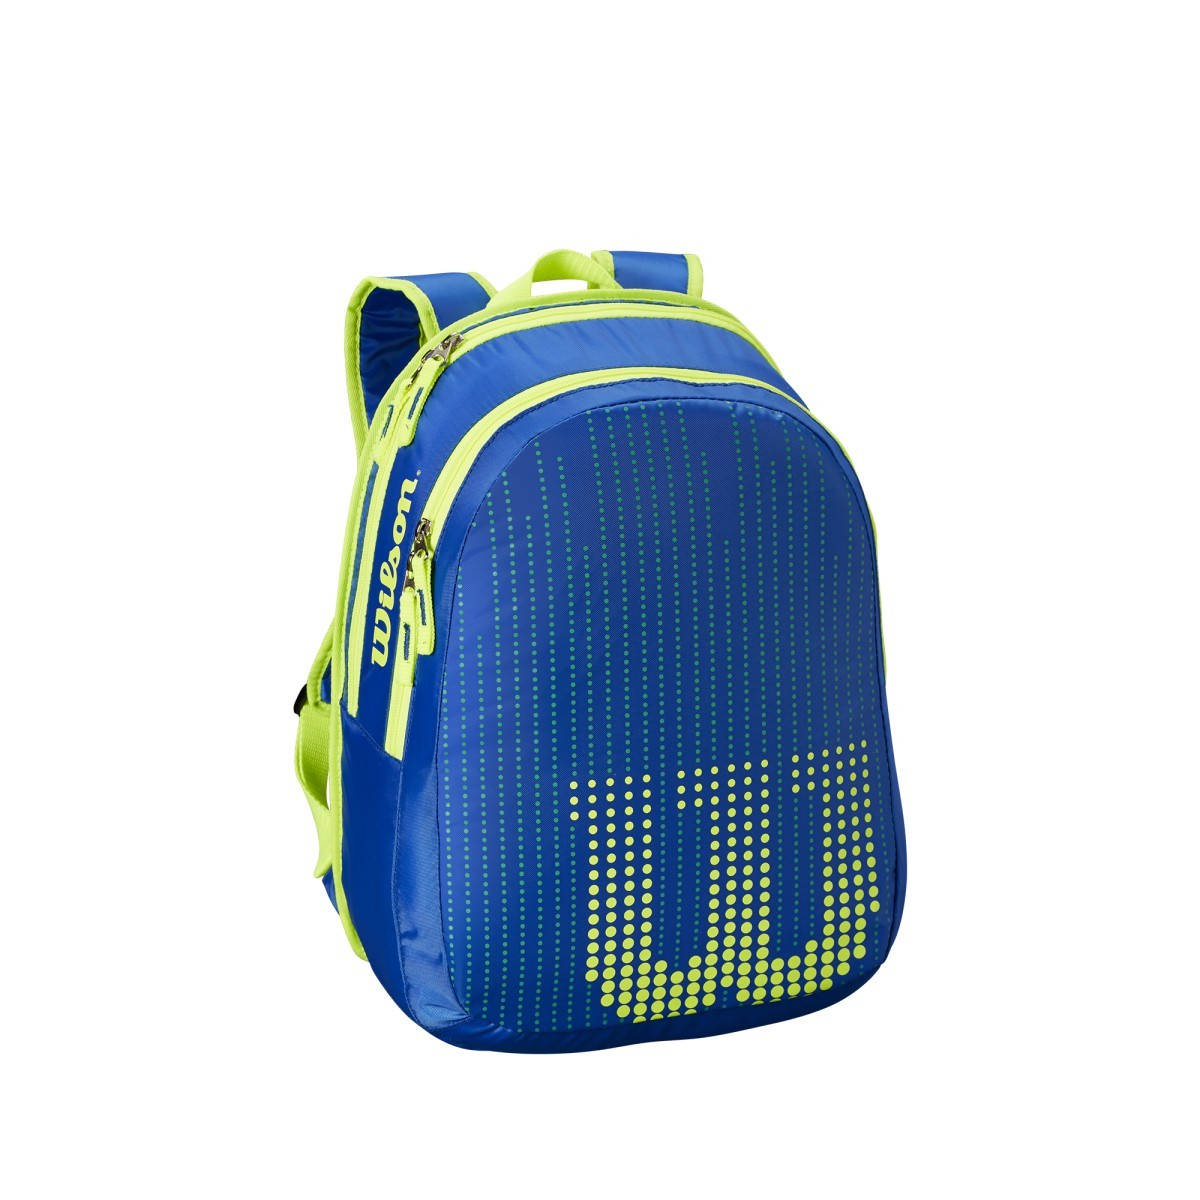 Wilson Junior Backpack BLYE, Wilson Junior Backpack BLYE в Новосибирске, Wilson Junior Backpack BLYE цена, Wilson Junior Backpack BLYE купить, Wilson Junior Backpack BLYE приобрети, Wilson Junior Backpack BLYE дешево, Wilson Junior Backpack BLYE с доставкой, Wilson Junior Backpack BLYE от дистрибьютора.